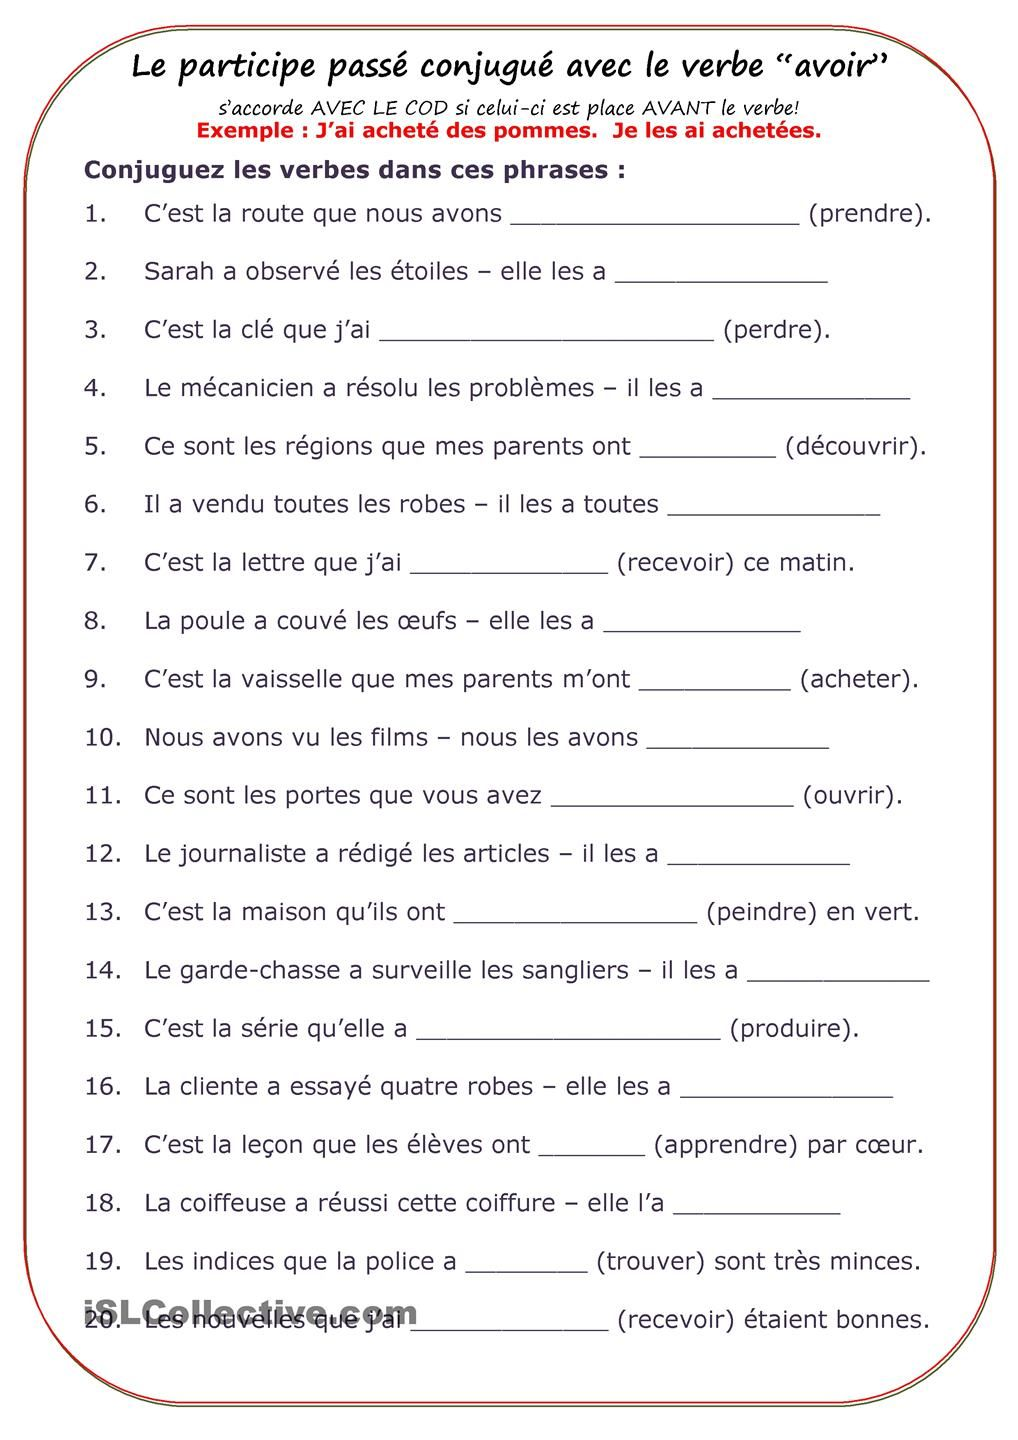 17 Best images about Verbs on Pinterest  Student-centered  grade worksheets, free worksheets, learning, alphabet worksheets, and worksheets for teachers Er Verbs In French Worksheet 1440 x 1018